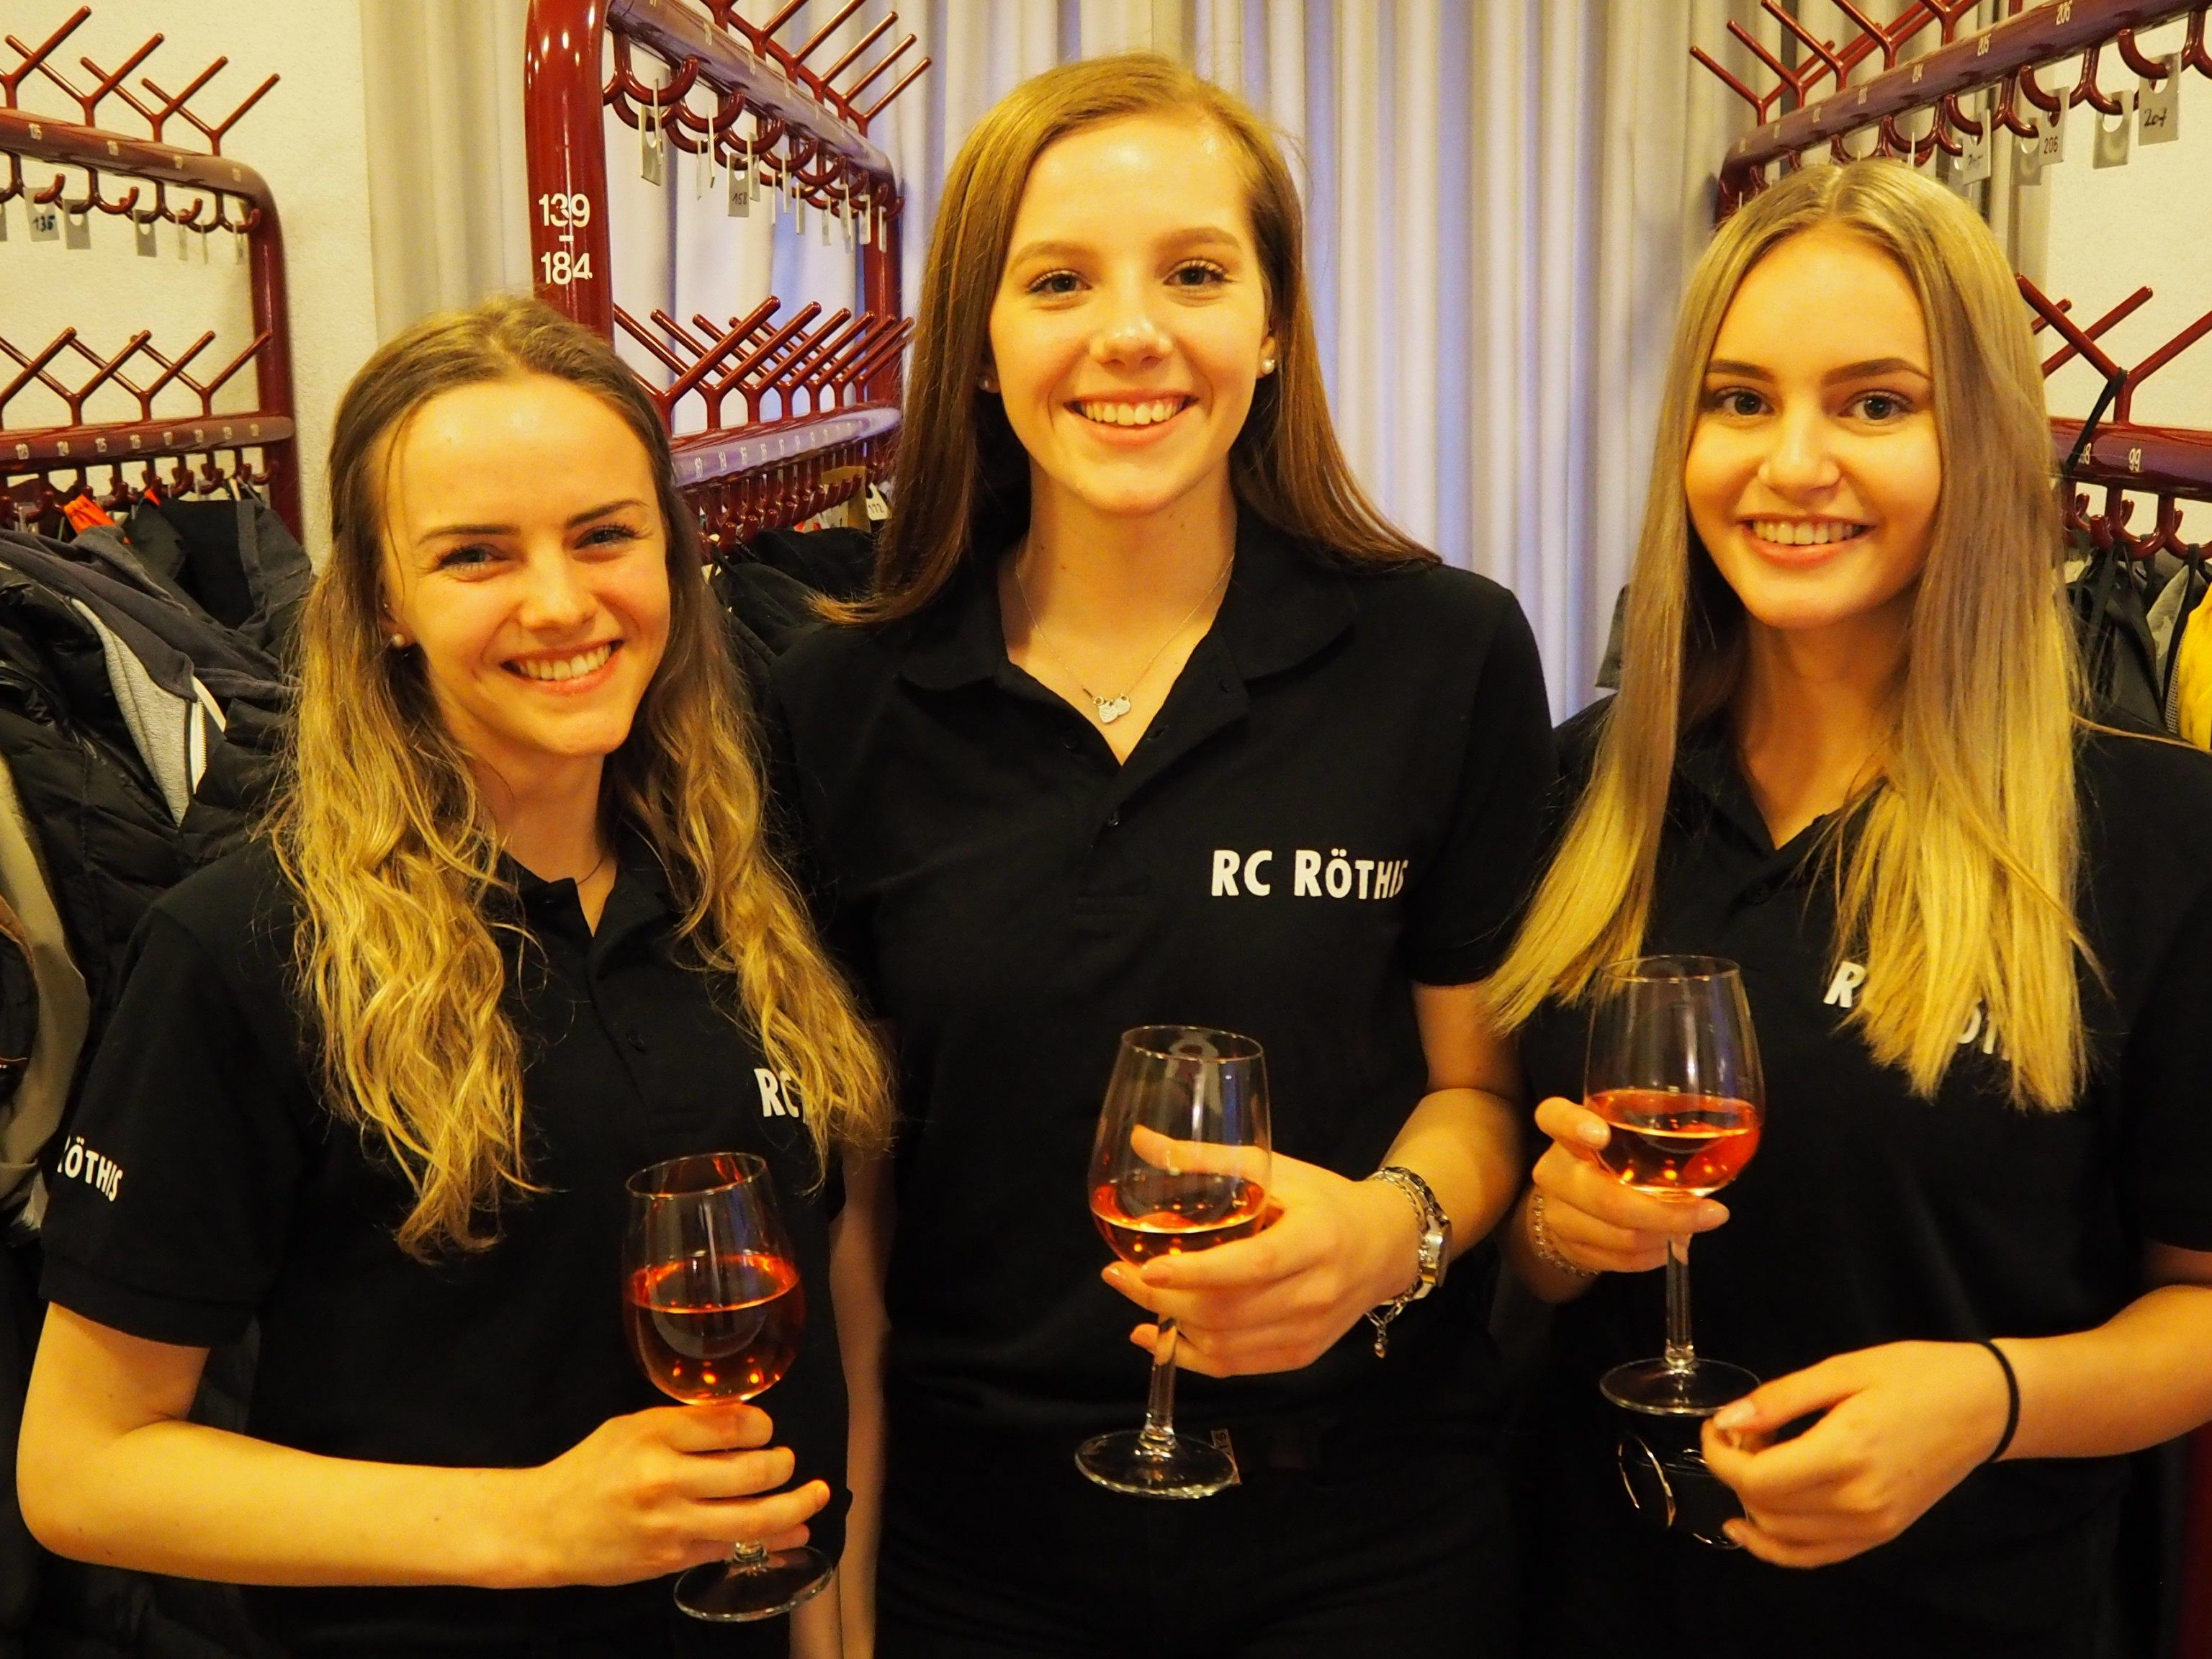 Charmanter Empfang: Laura, Annika, Lea